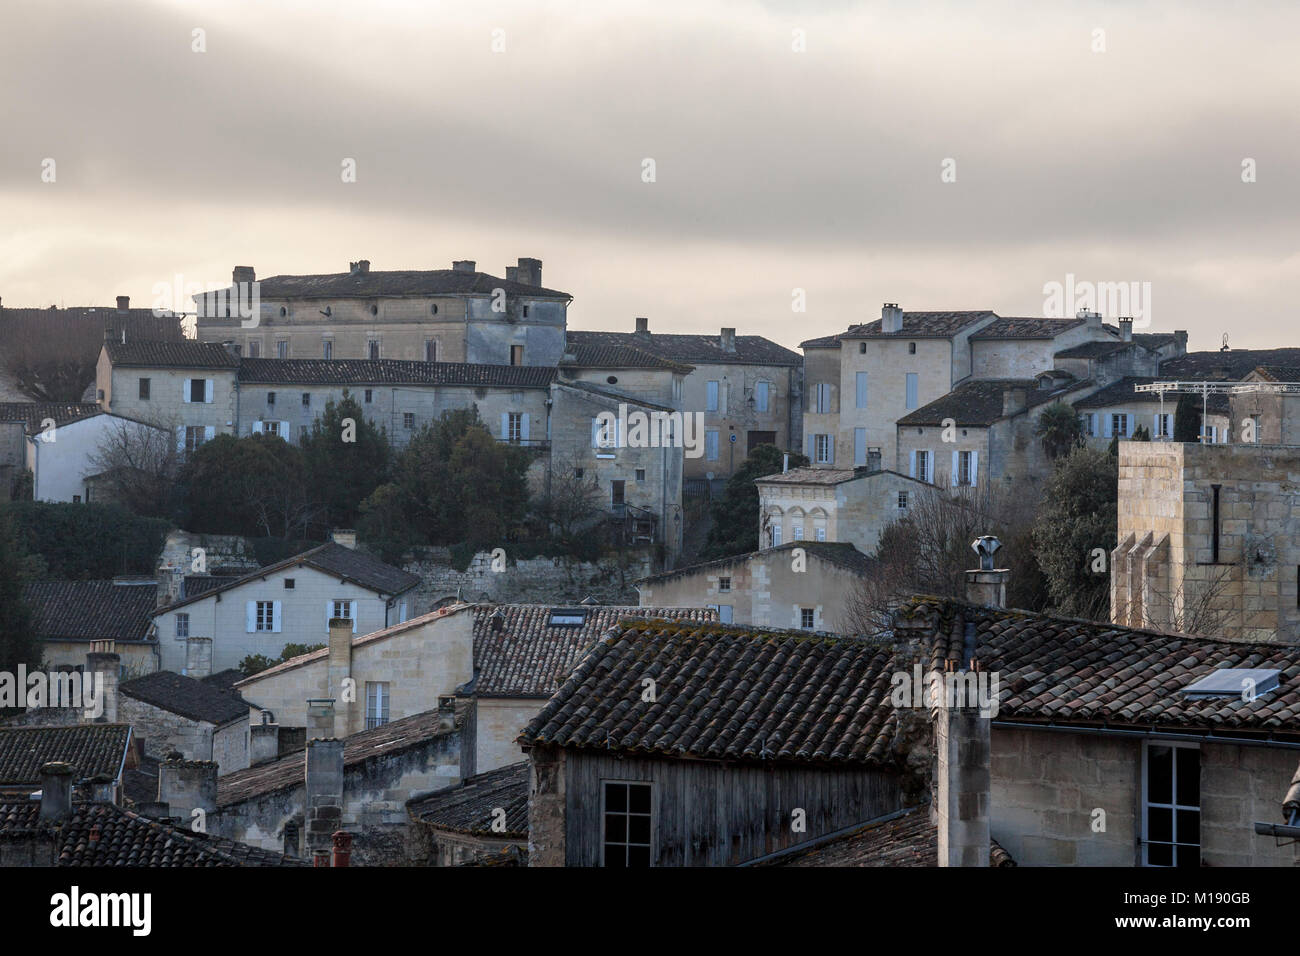 Panorama of the medieval city of Saint Emilion, France with typical traditional Southwestern (Aquitaine houses), - Stock Image